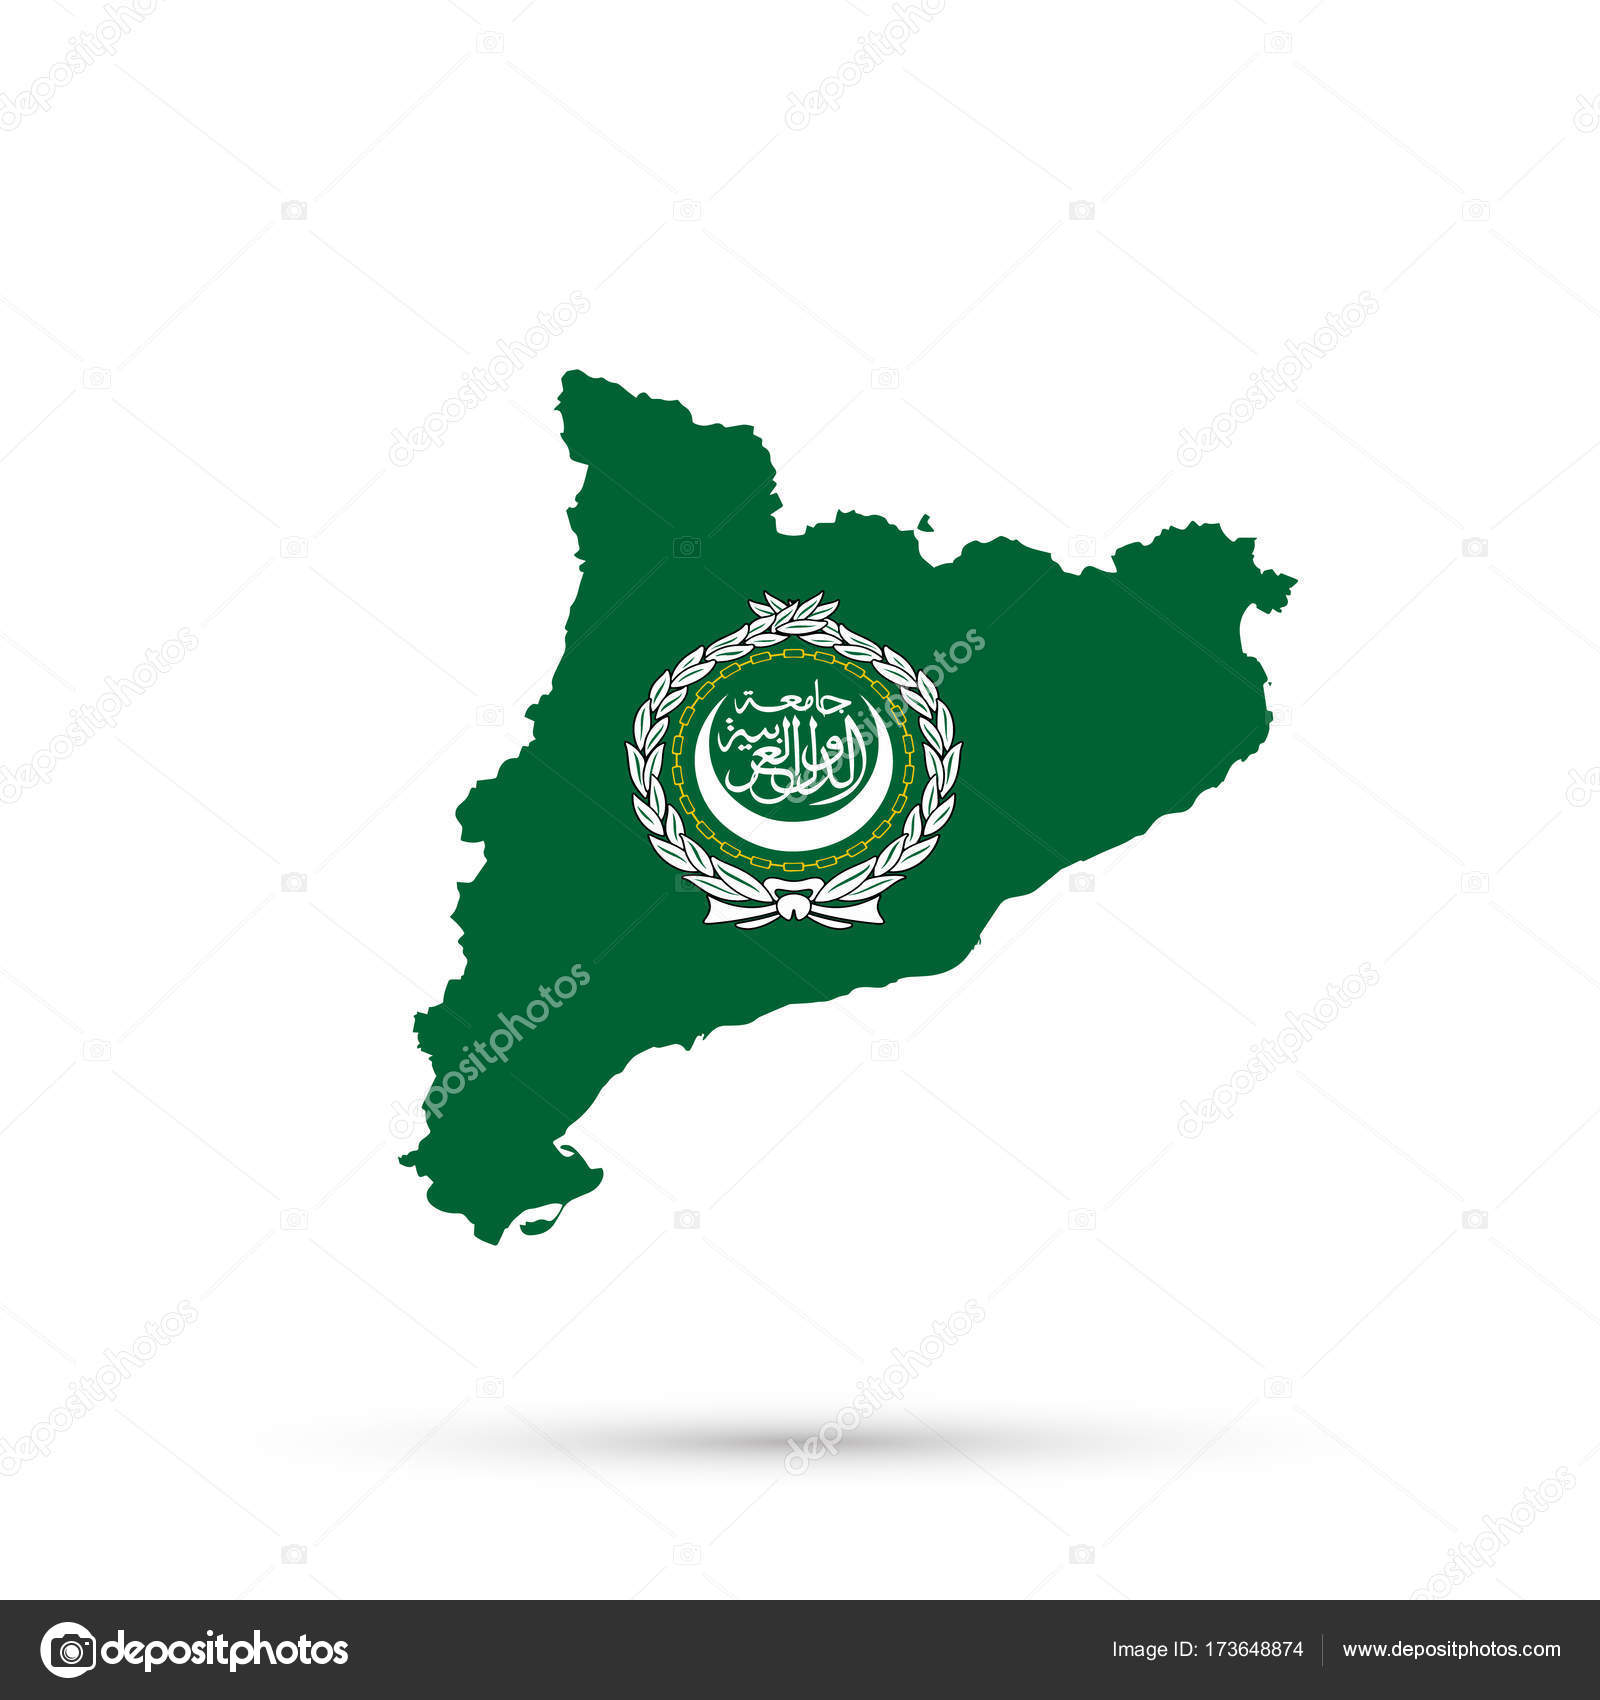 Picture of: Catalonia Map In Arab League Flag Colors Stock Photo C L8l 173648874